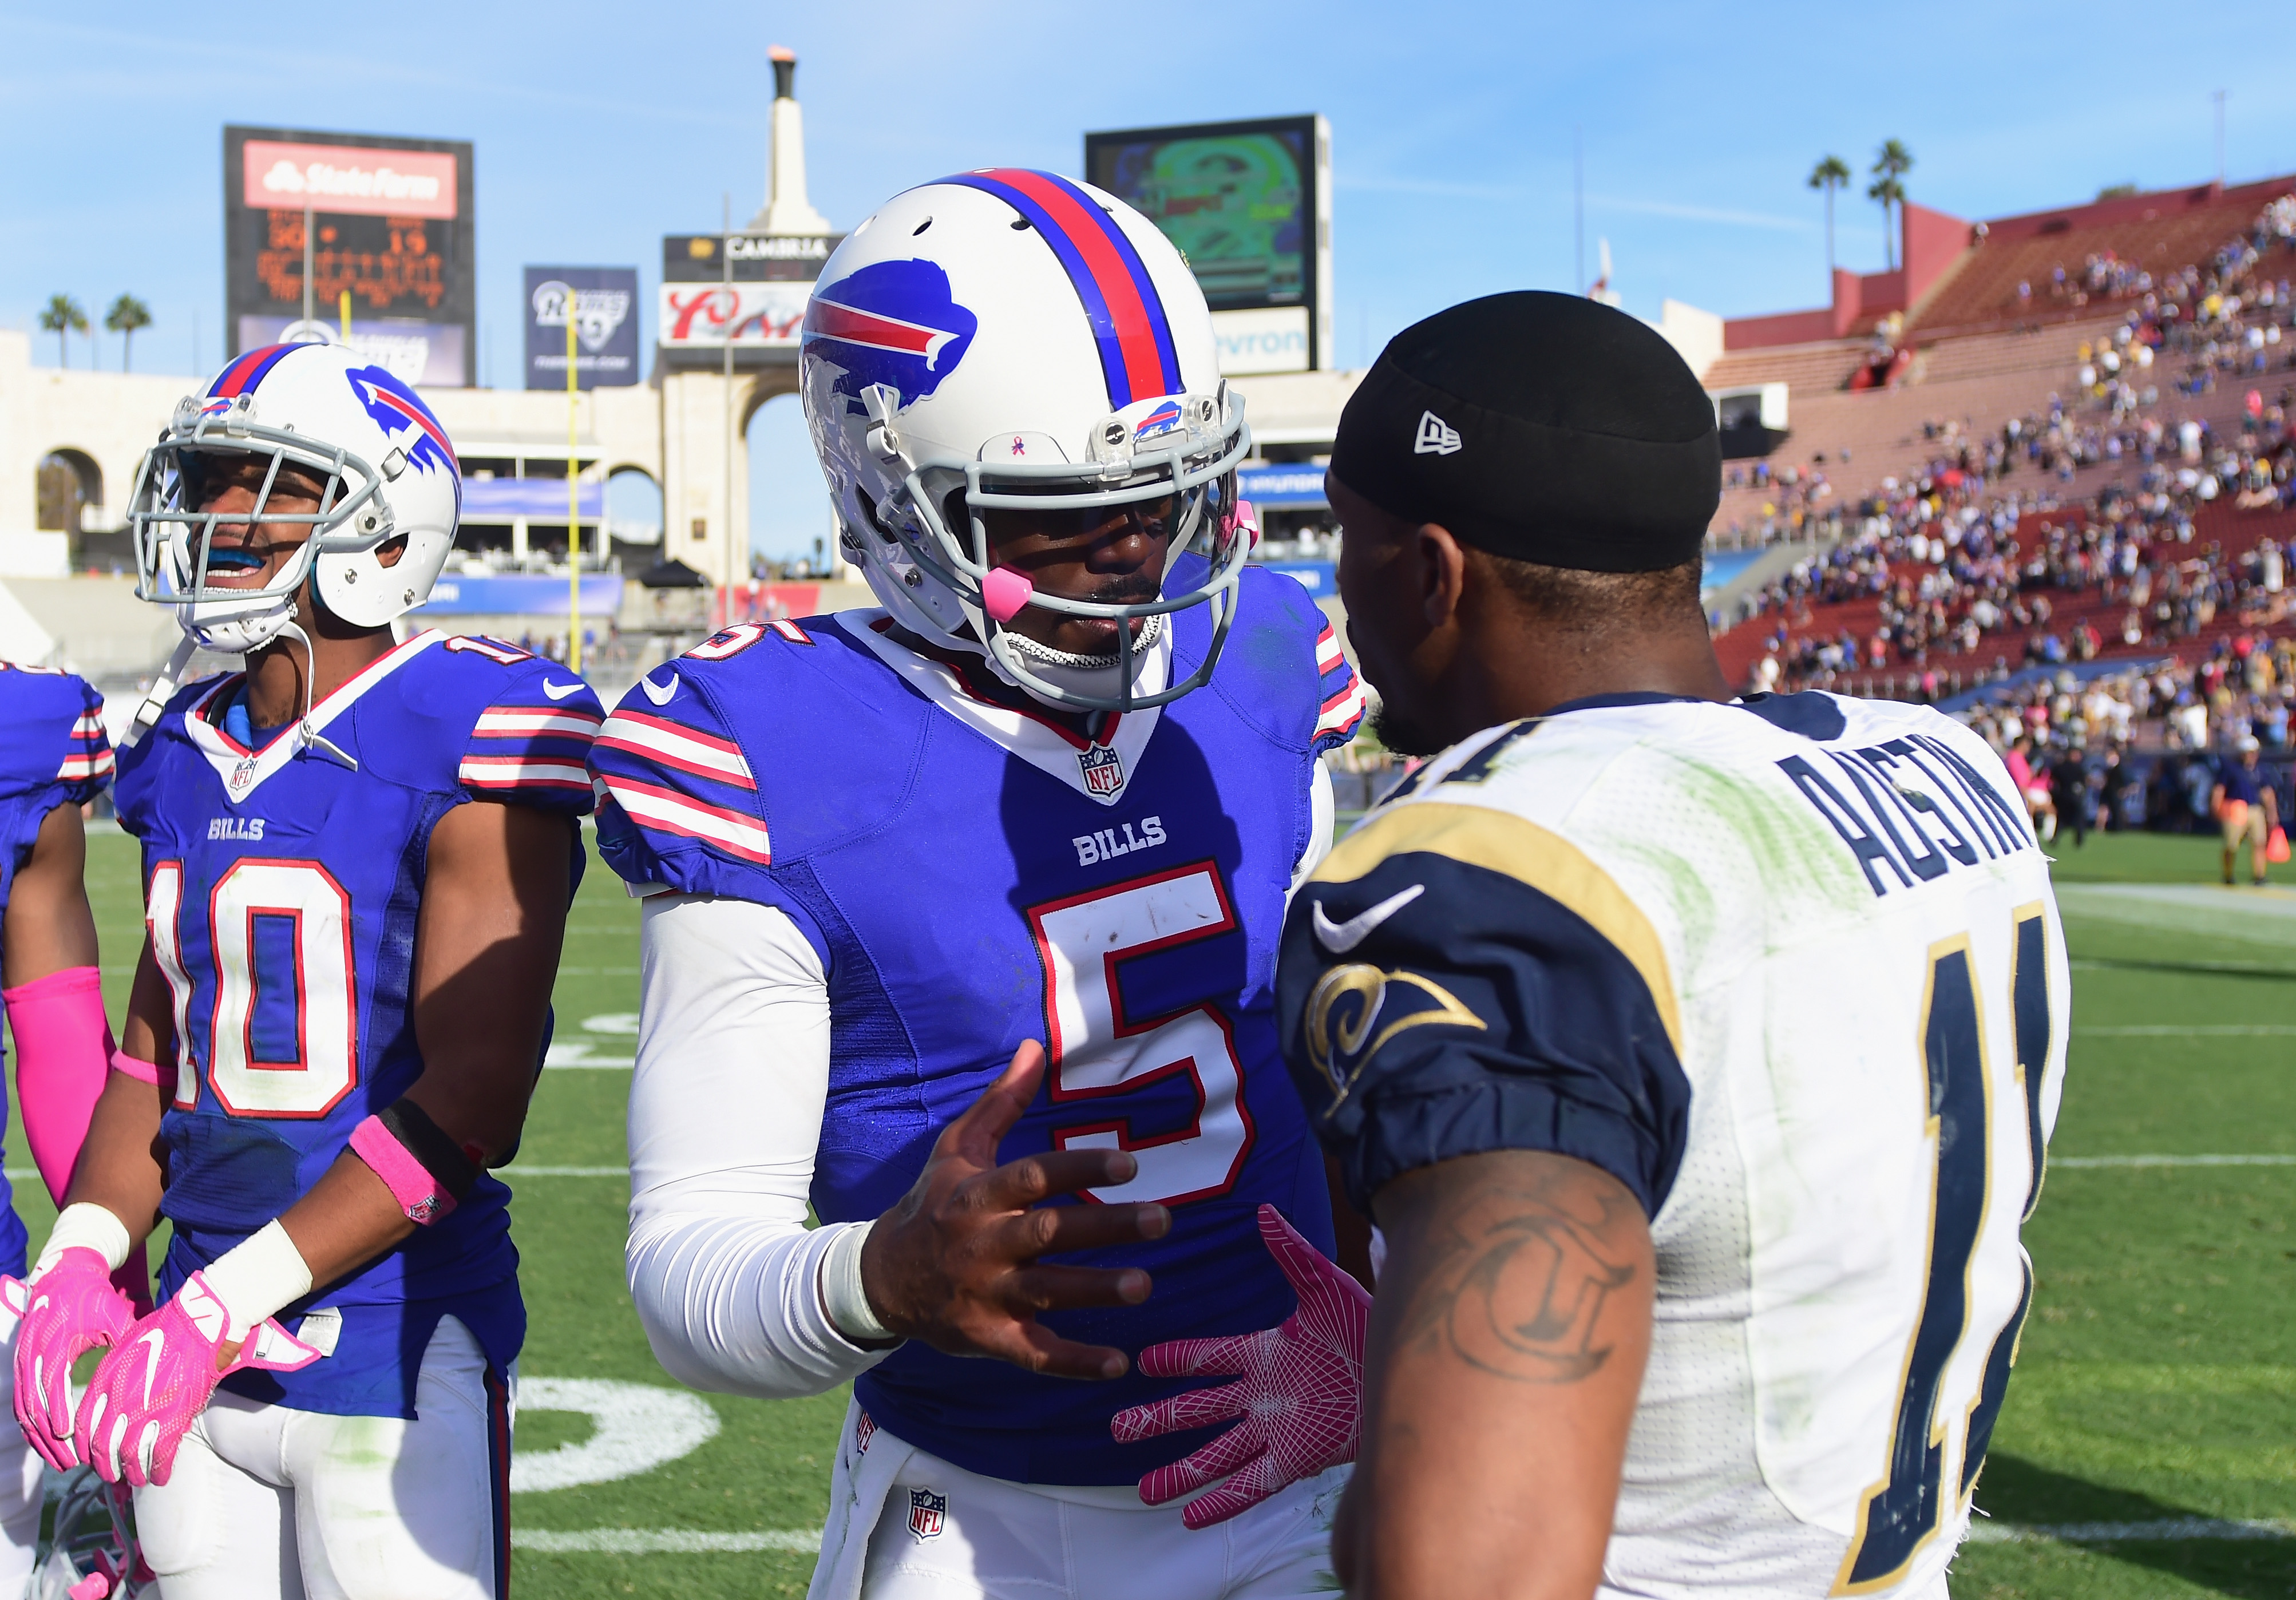 Bills quarterback Tyrod Taylor led his team to a victory in its last trip to the West Coast, which came last week against Seattle. (Getty Images)